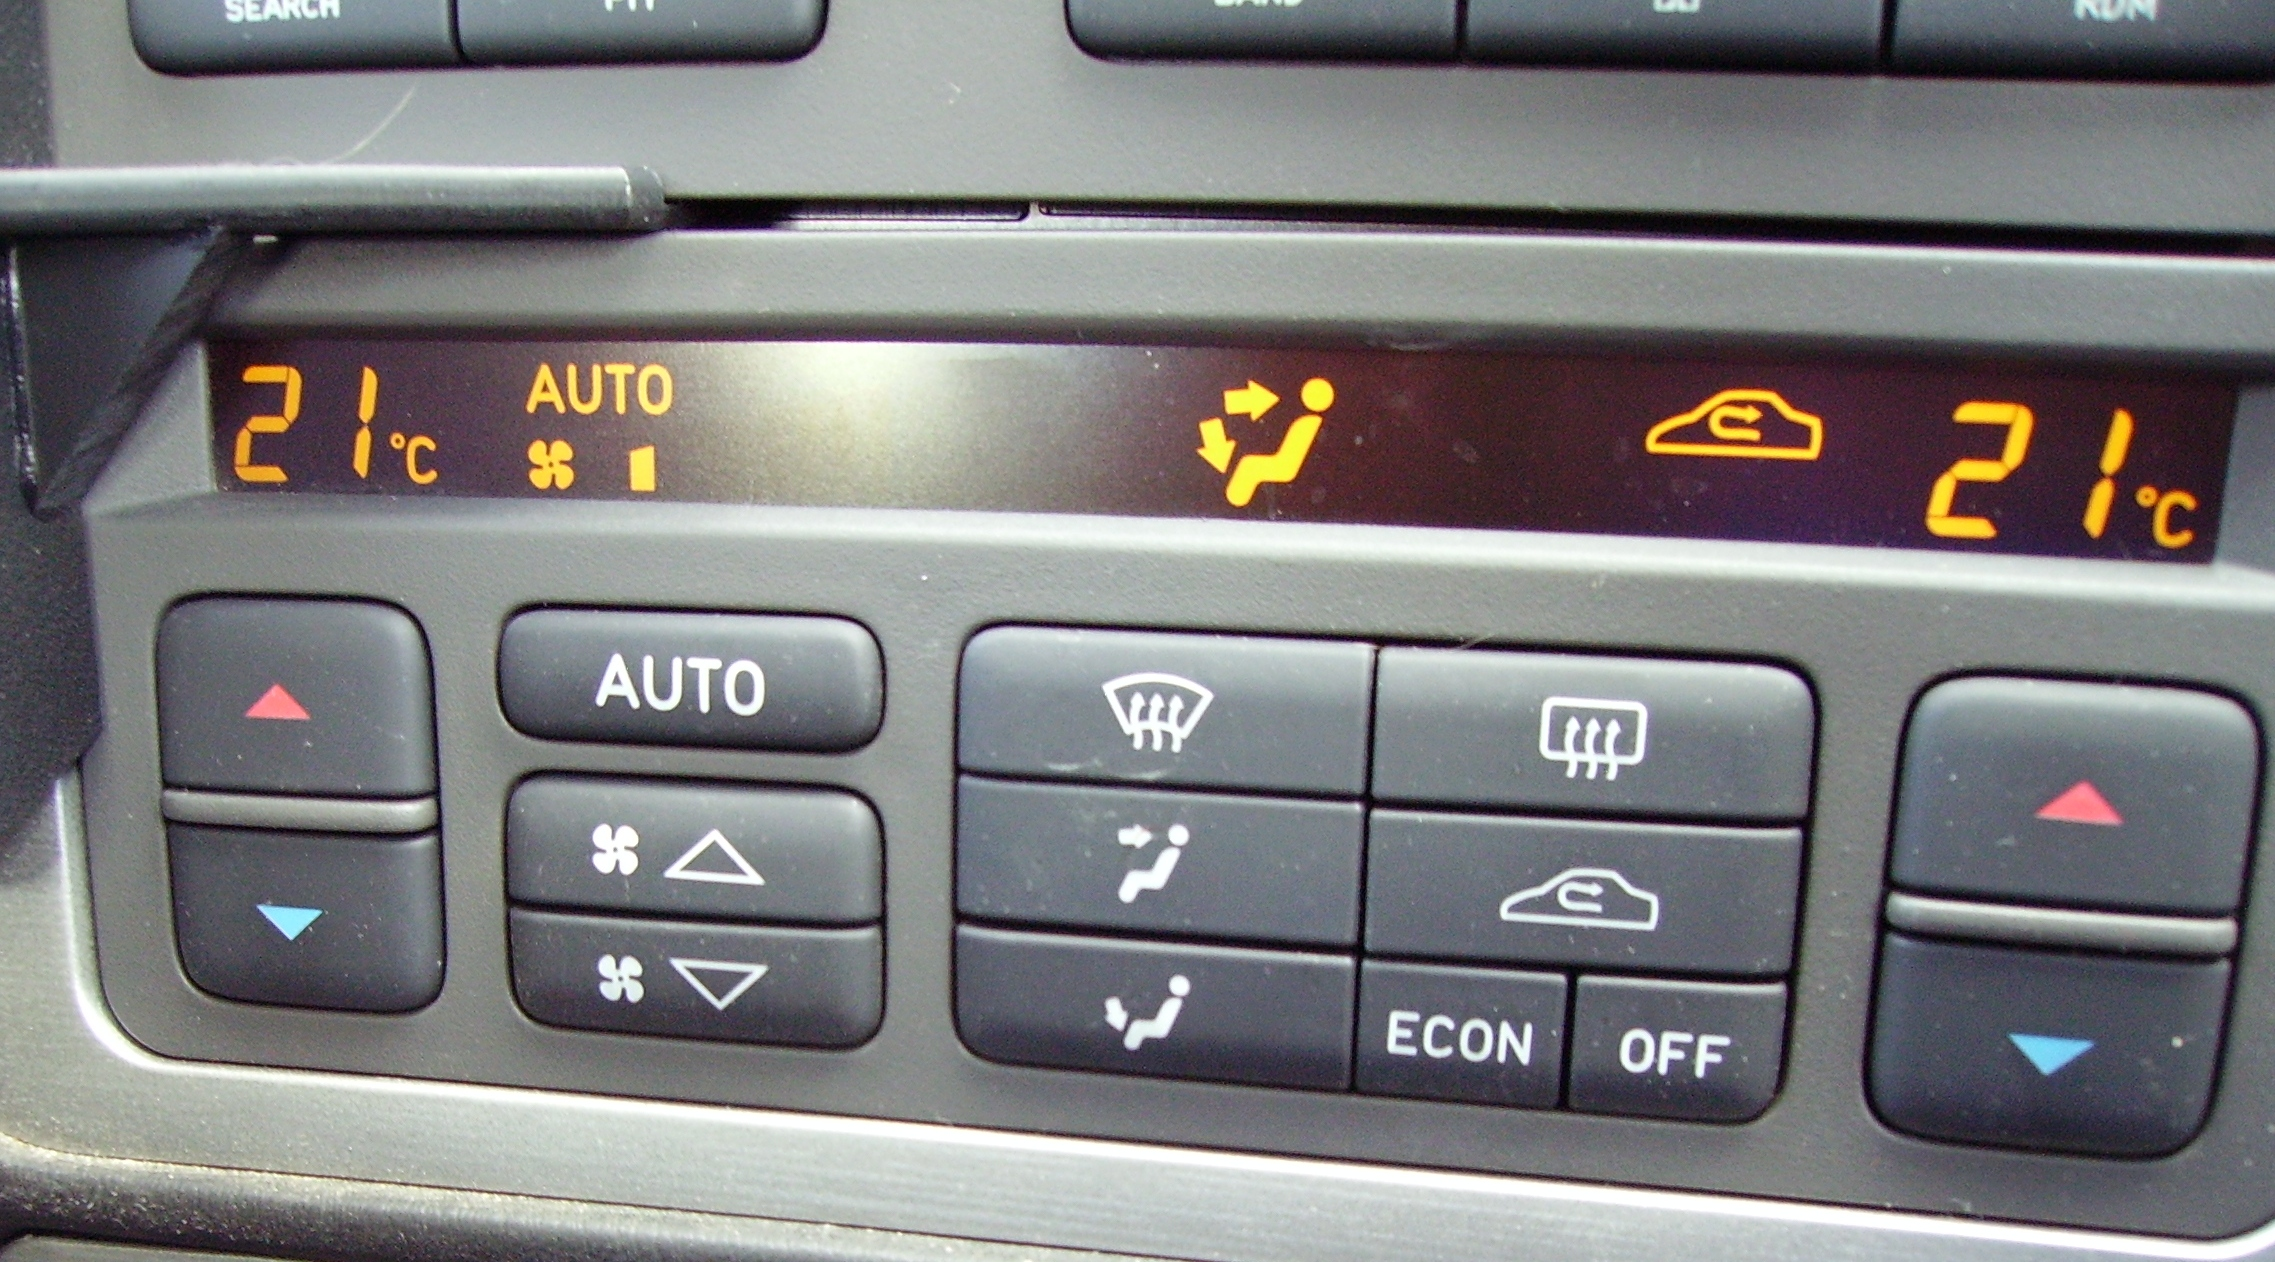 Climate control is a feature on high-end cars